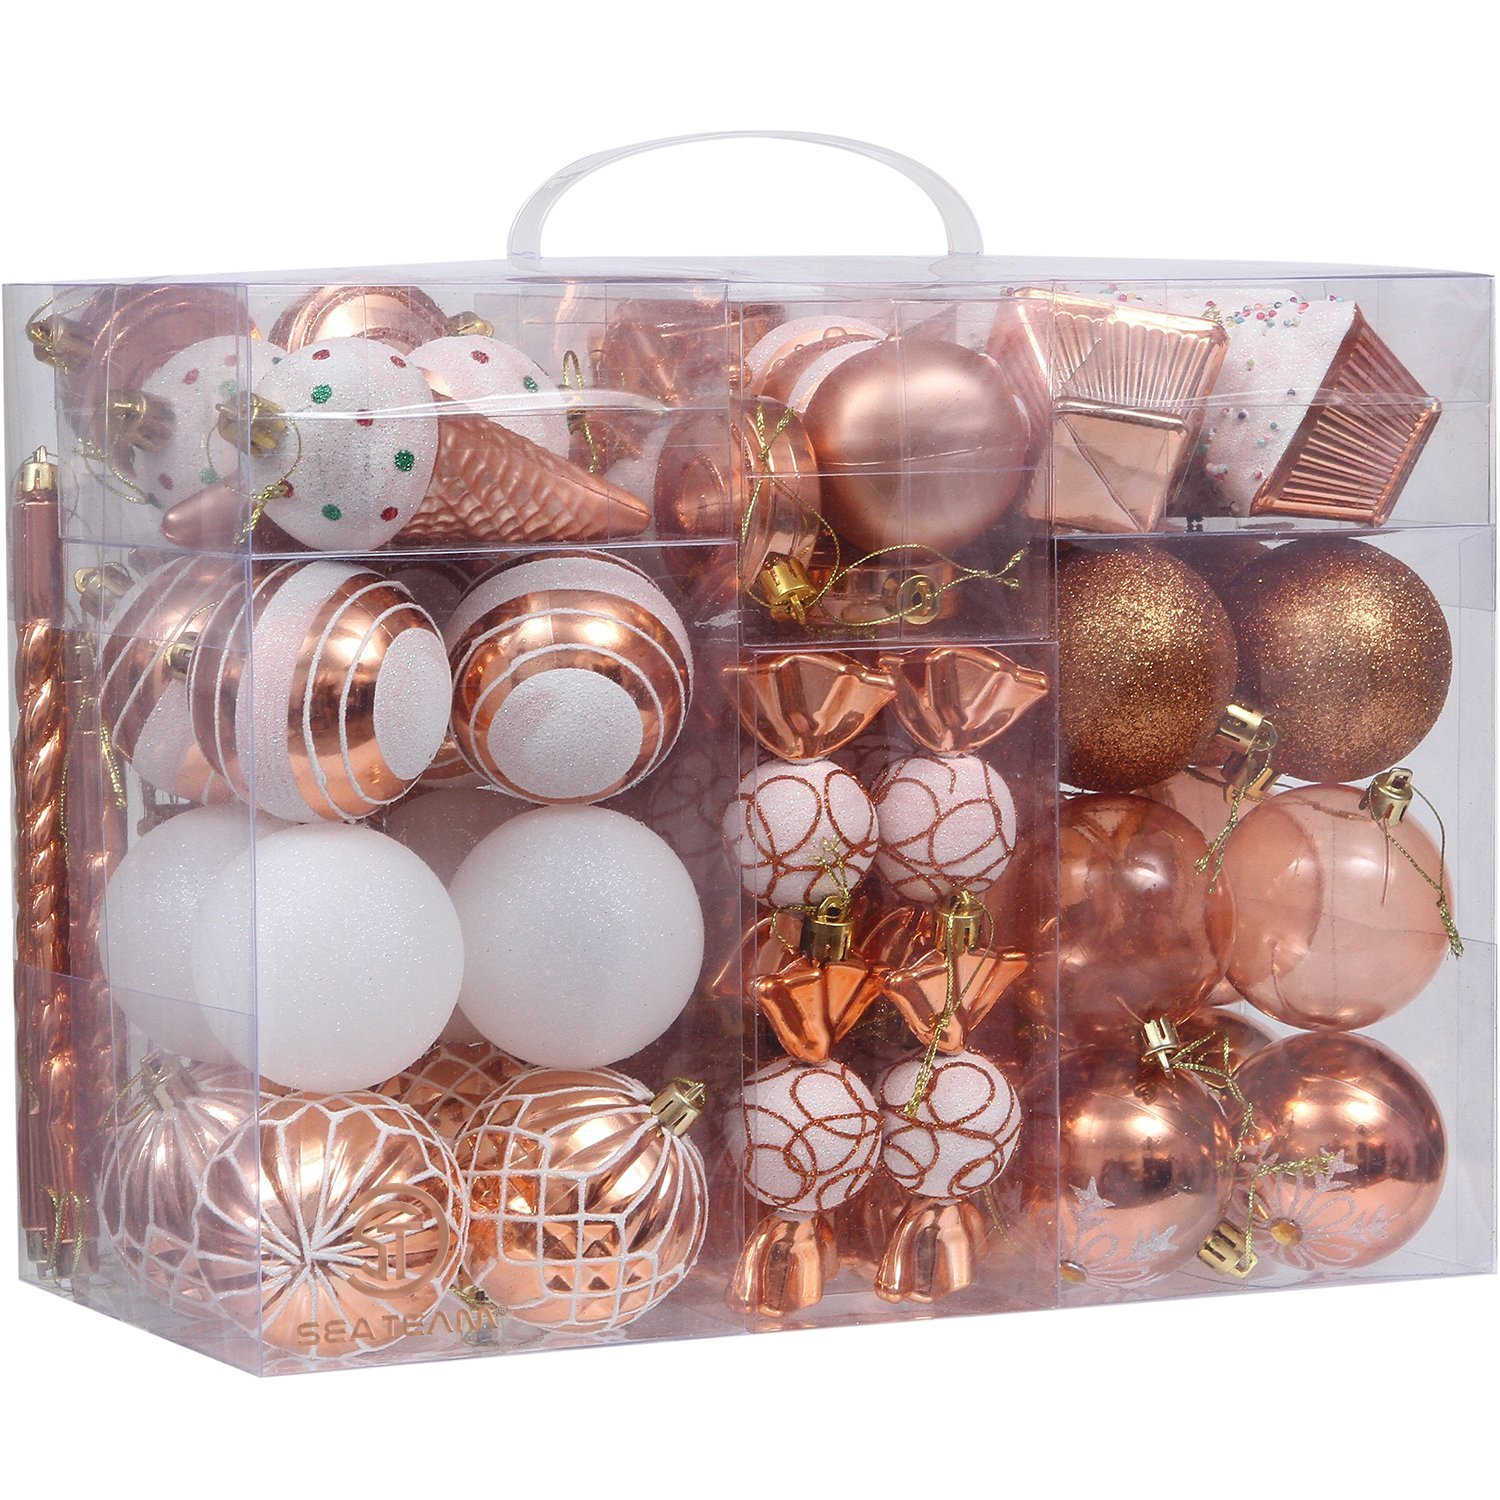 Decorative Christmas Ball Ornaments: ASSORTED SHATTERPROOF CHRISTMAS BALL ORNAMENTS SET